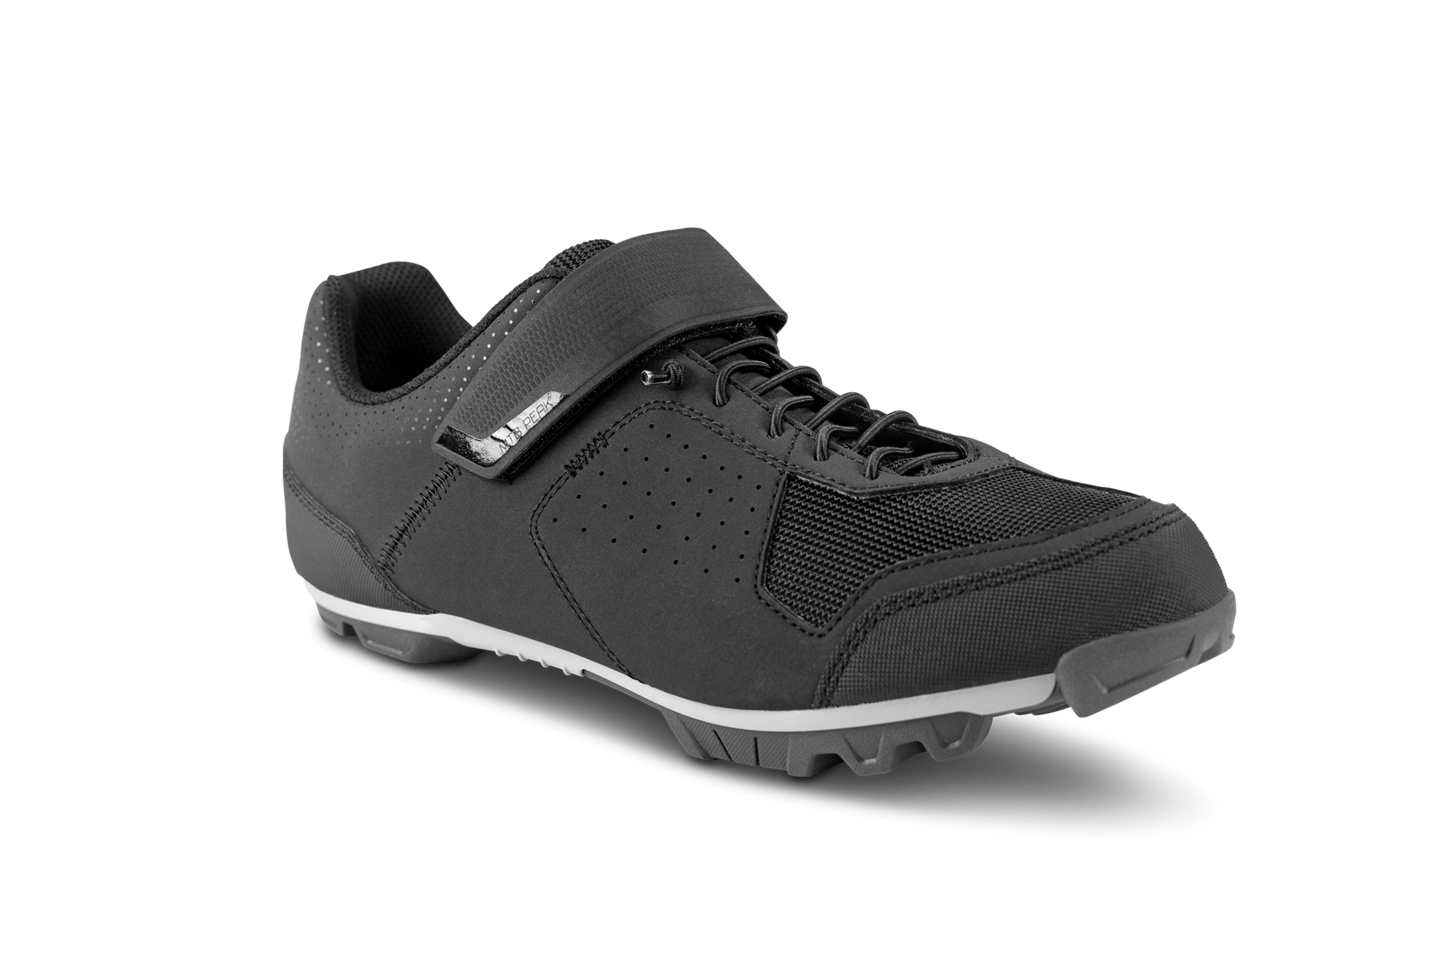 2019 Cube Mtb Peak Clipped Shoes in Black | Shoes